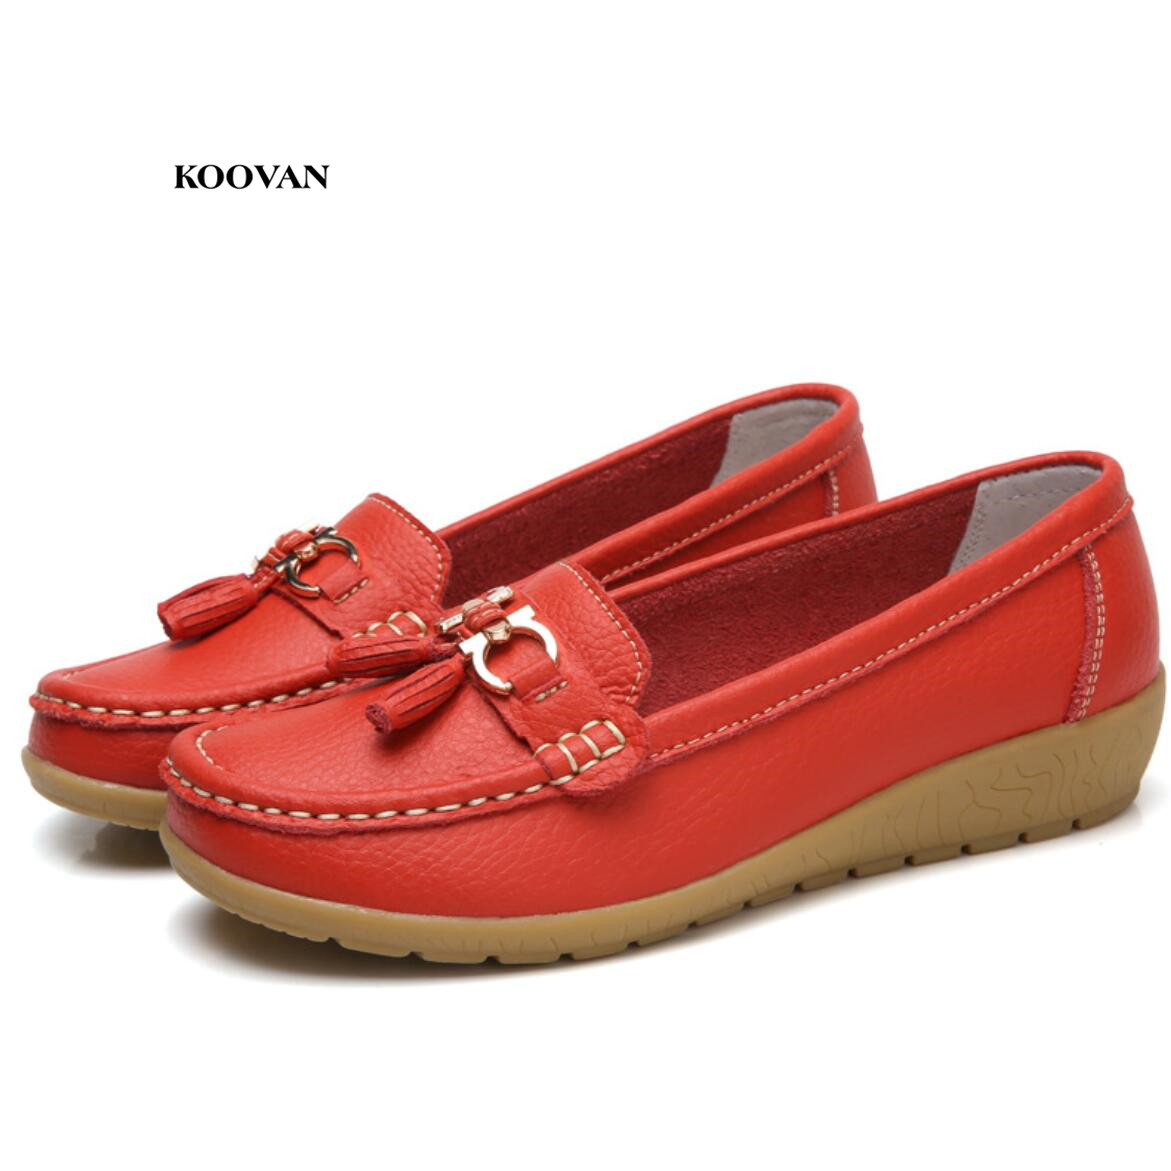 Koovan Women Leather Shoes 2018 Spring New Genuine Leather Aged Mother Shoes Women's Single Peas Soft Bottom Tassel Nurse Shoes aiyuqi 2018 new genuine leather women s shoes shallow mouth soft nurse shoes comfortable work spring shoes women